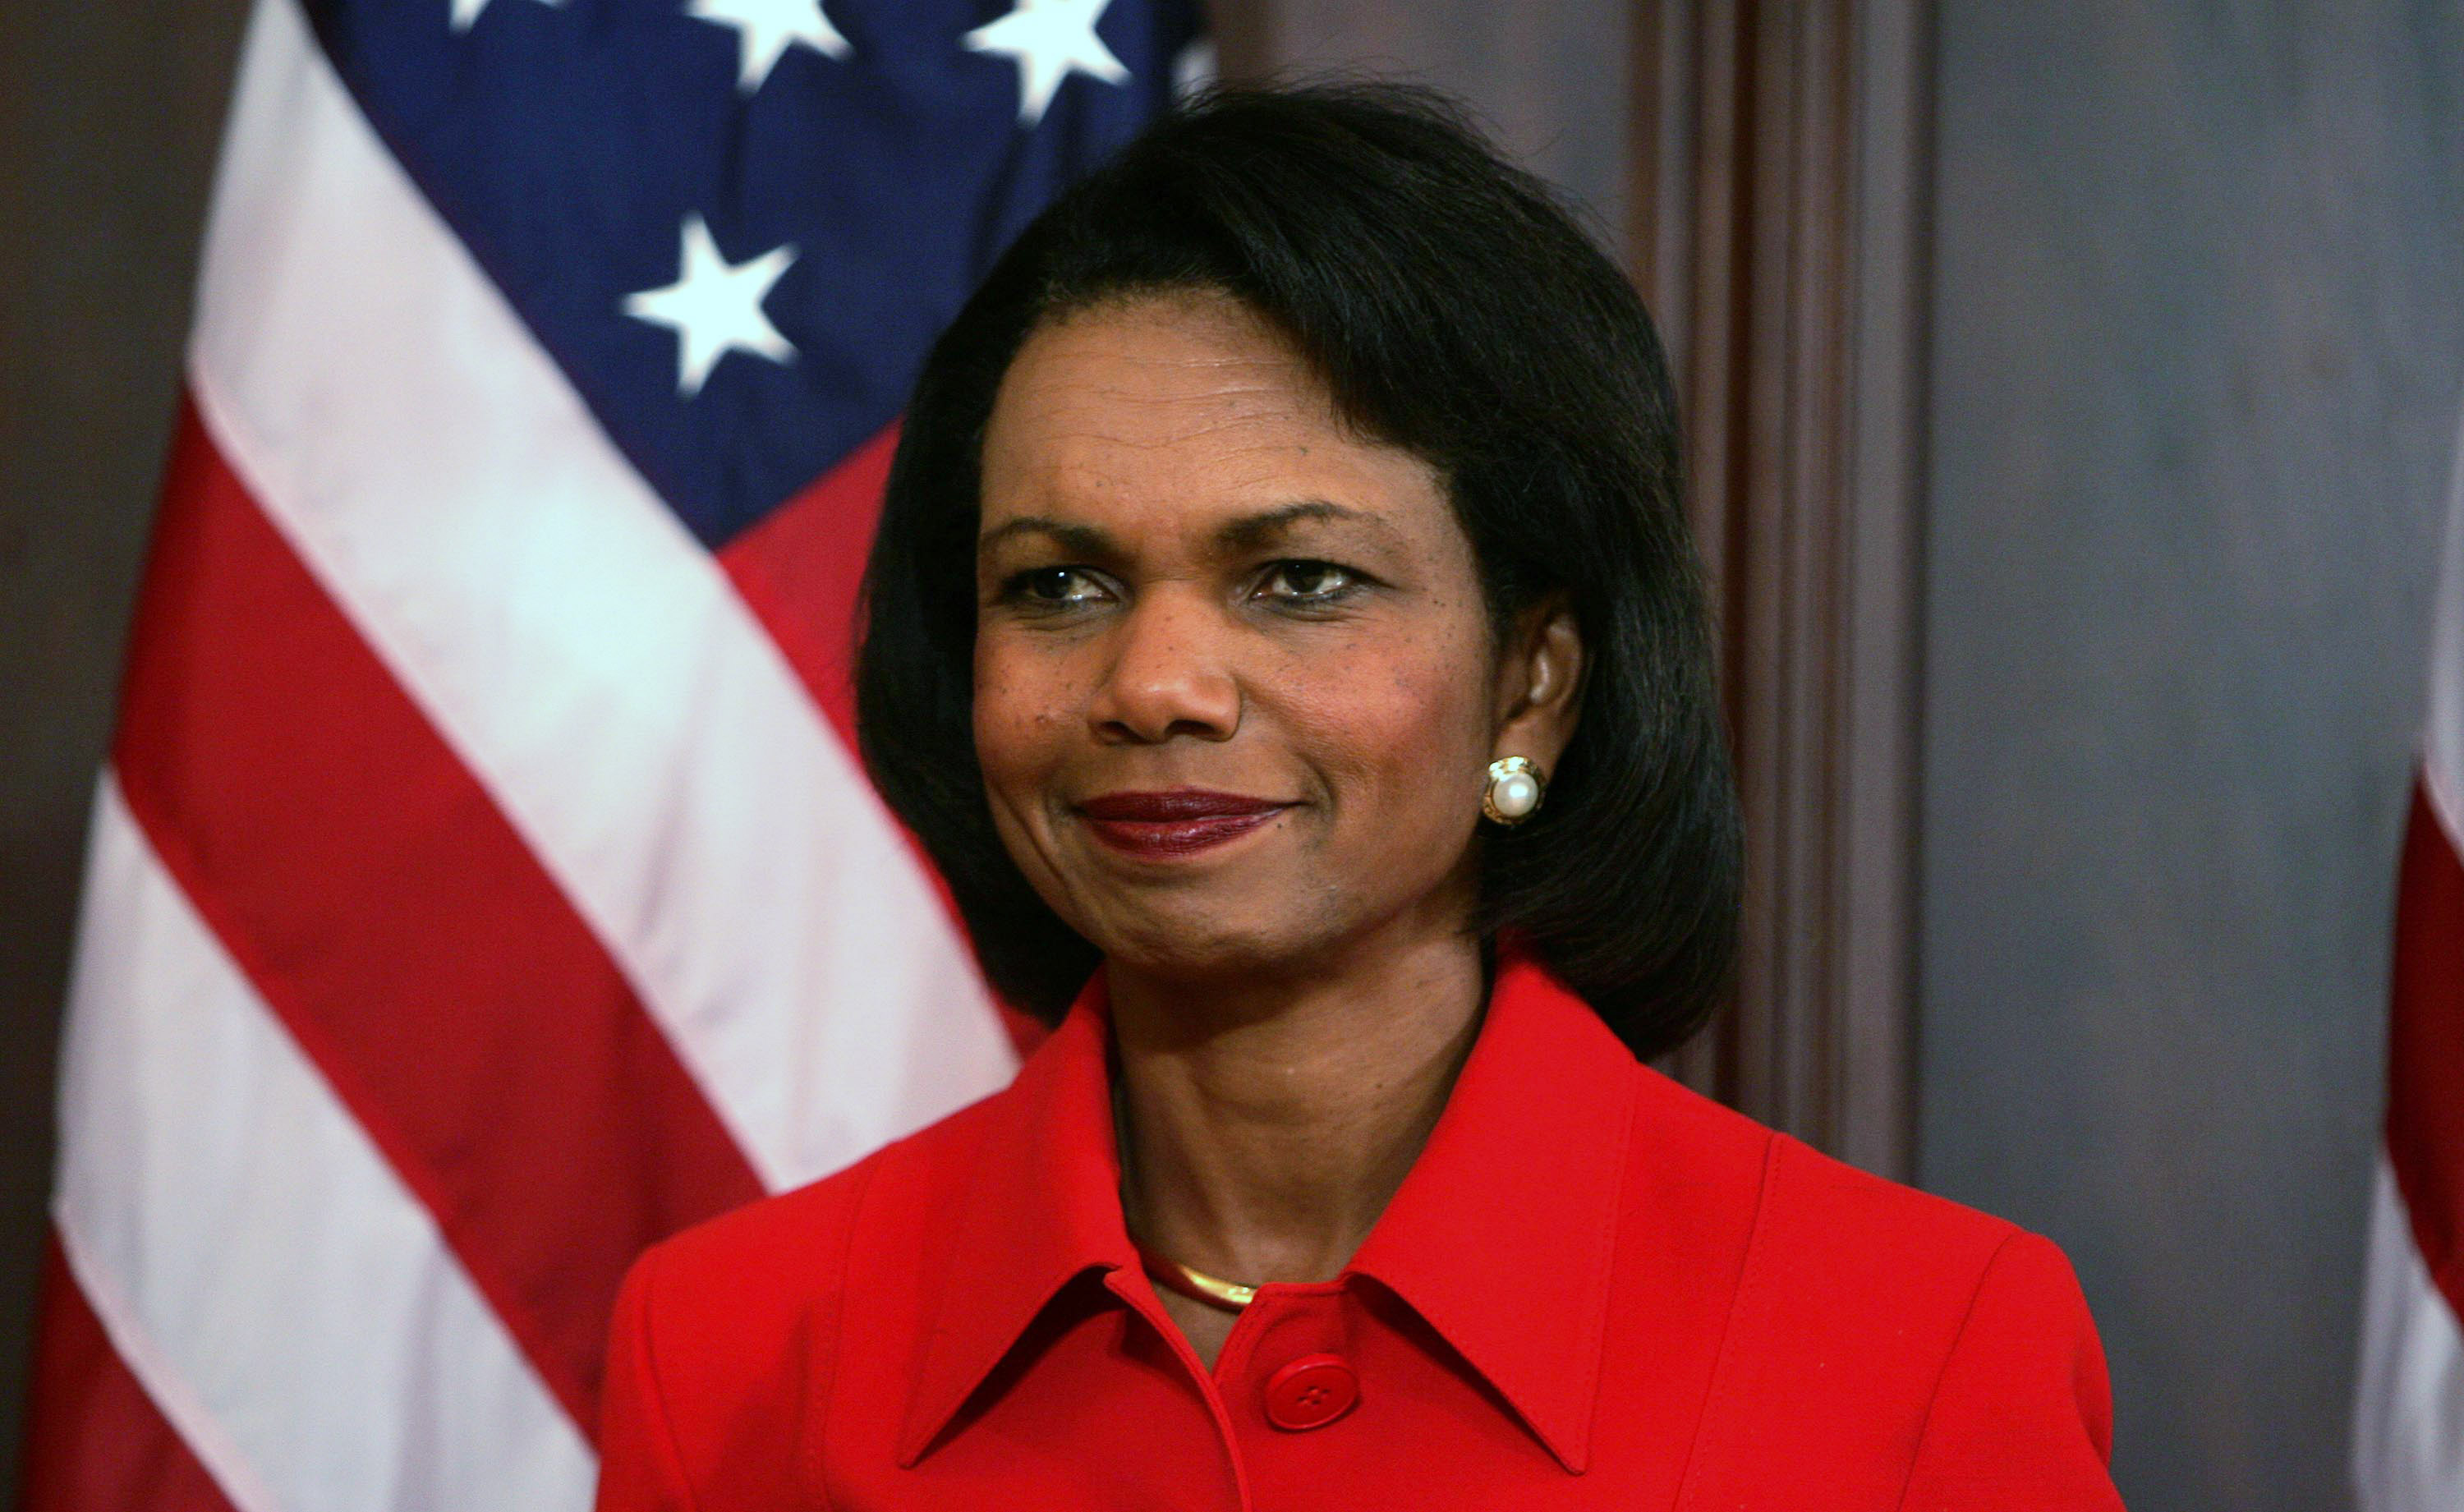 an introduction to the life and work by condoleezza rice Watch video  leadership condoleezza rice attributes her success to this vital life lesson she learned from playing sports.